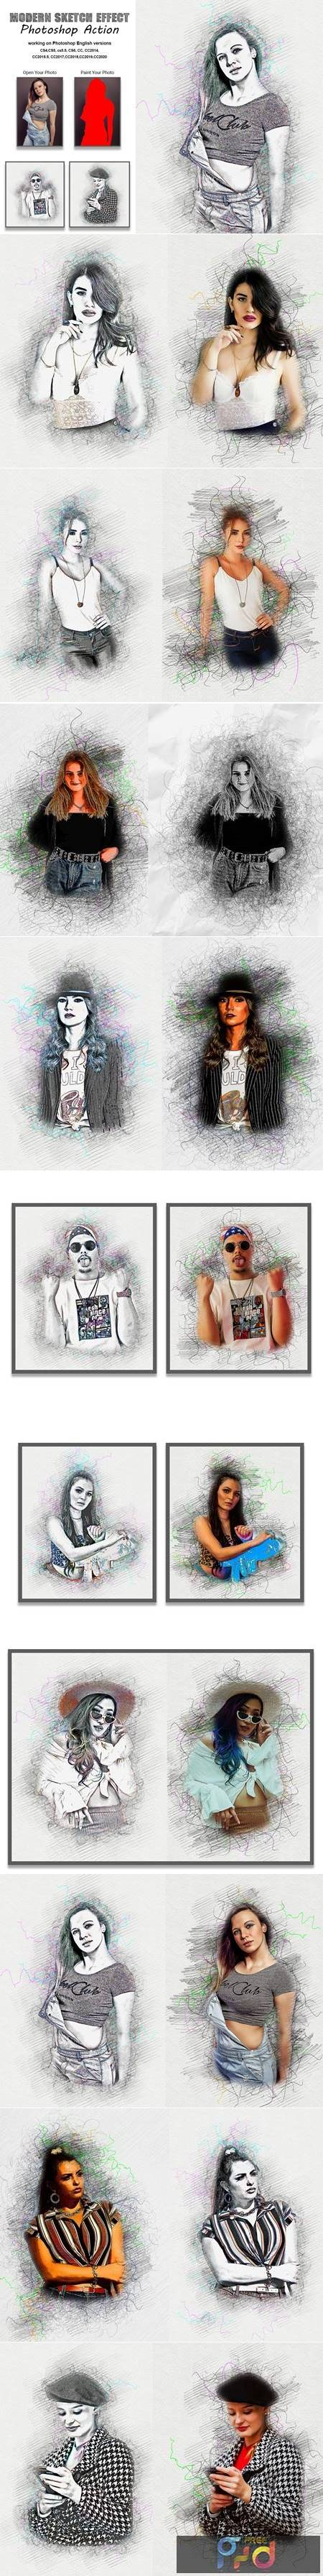 Modern Sketch Effect PS Action 5404495 1